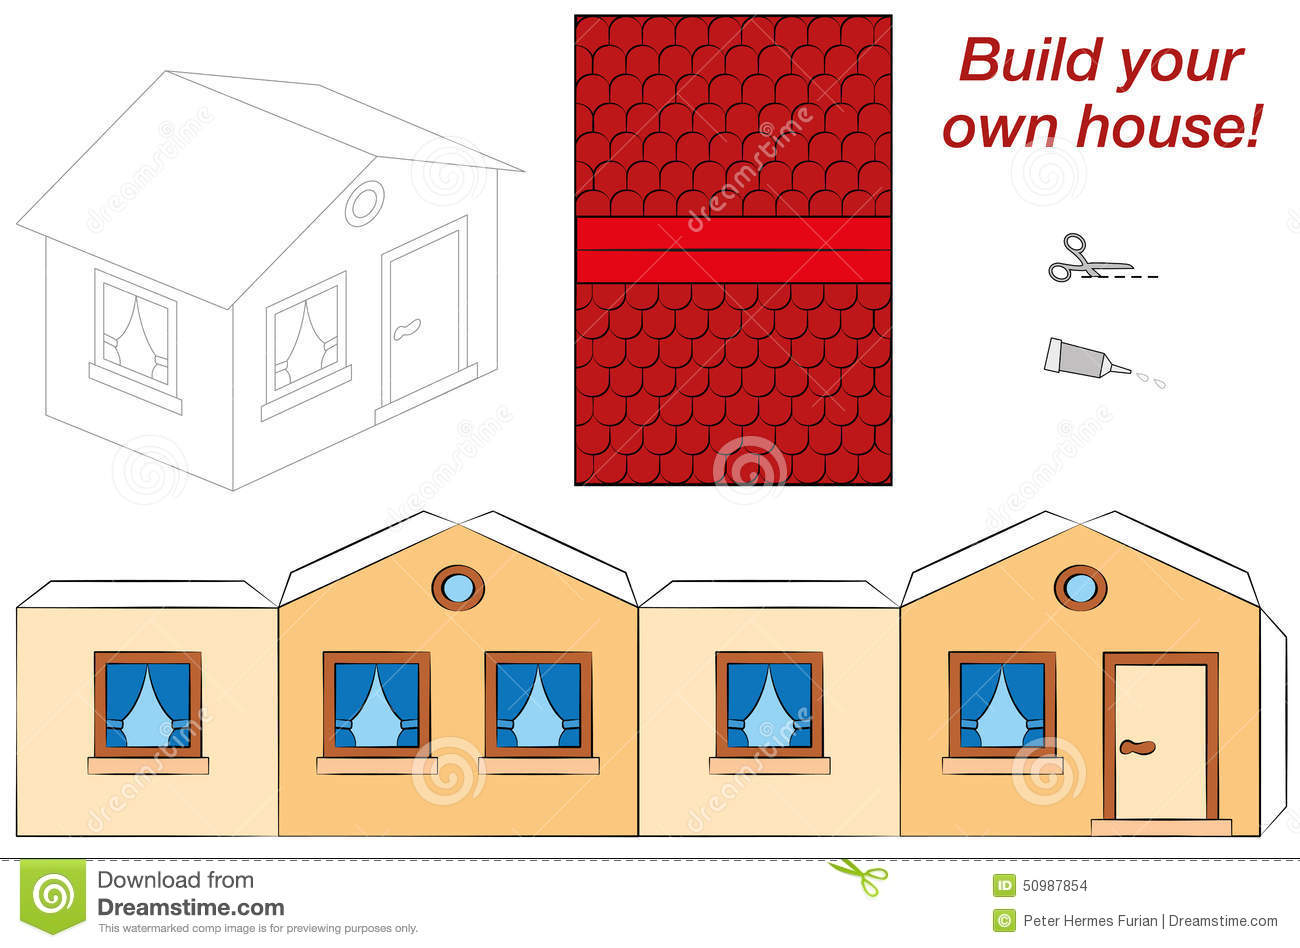 Plantilla linda de la casa ilustraci n del vector imagen for Build your own house online free